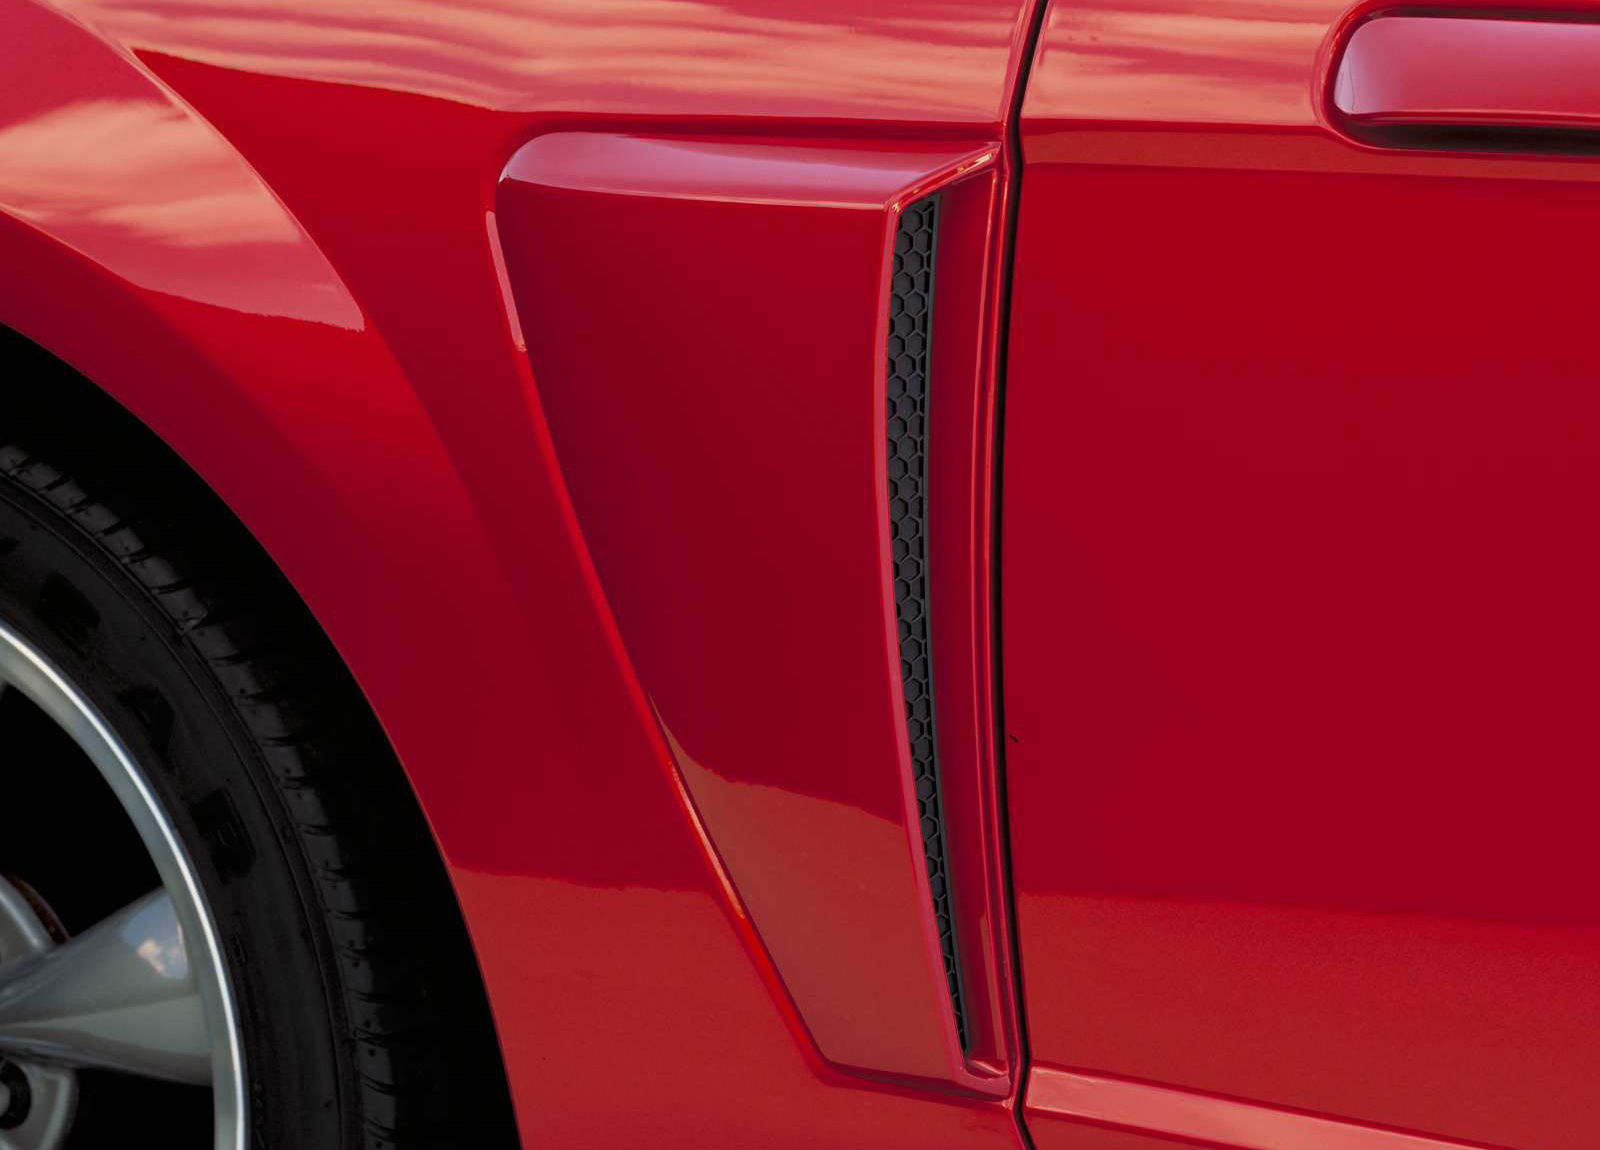 Ford Mustang GT Convertible photo #5